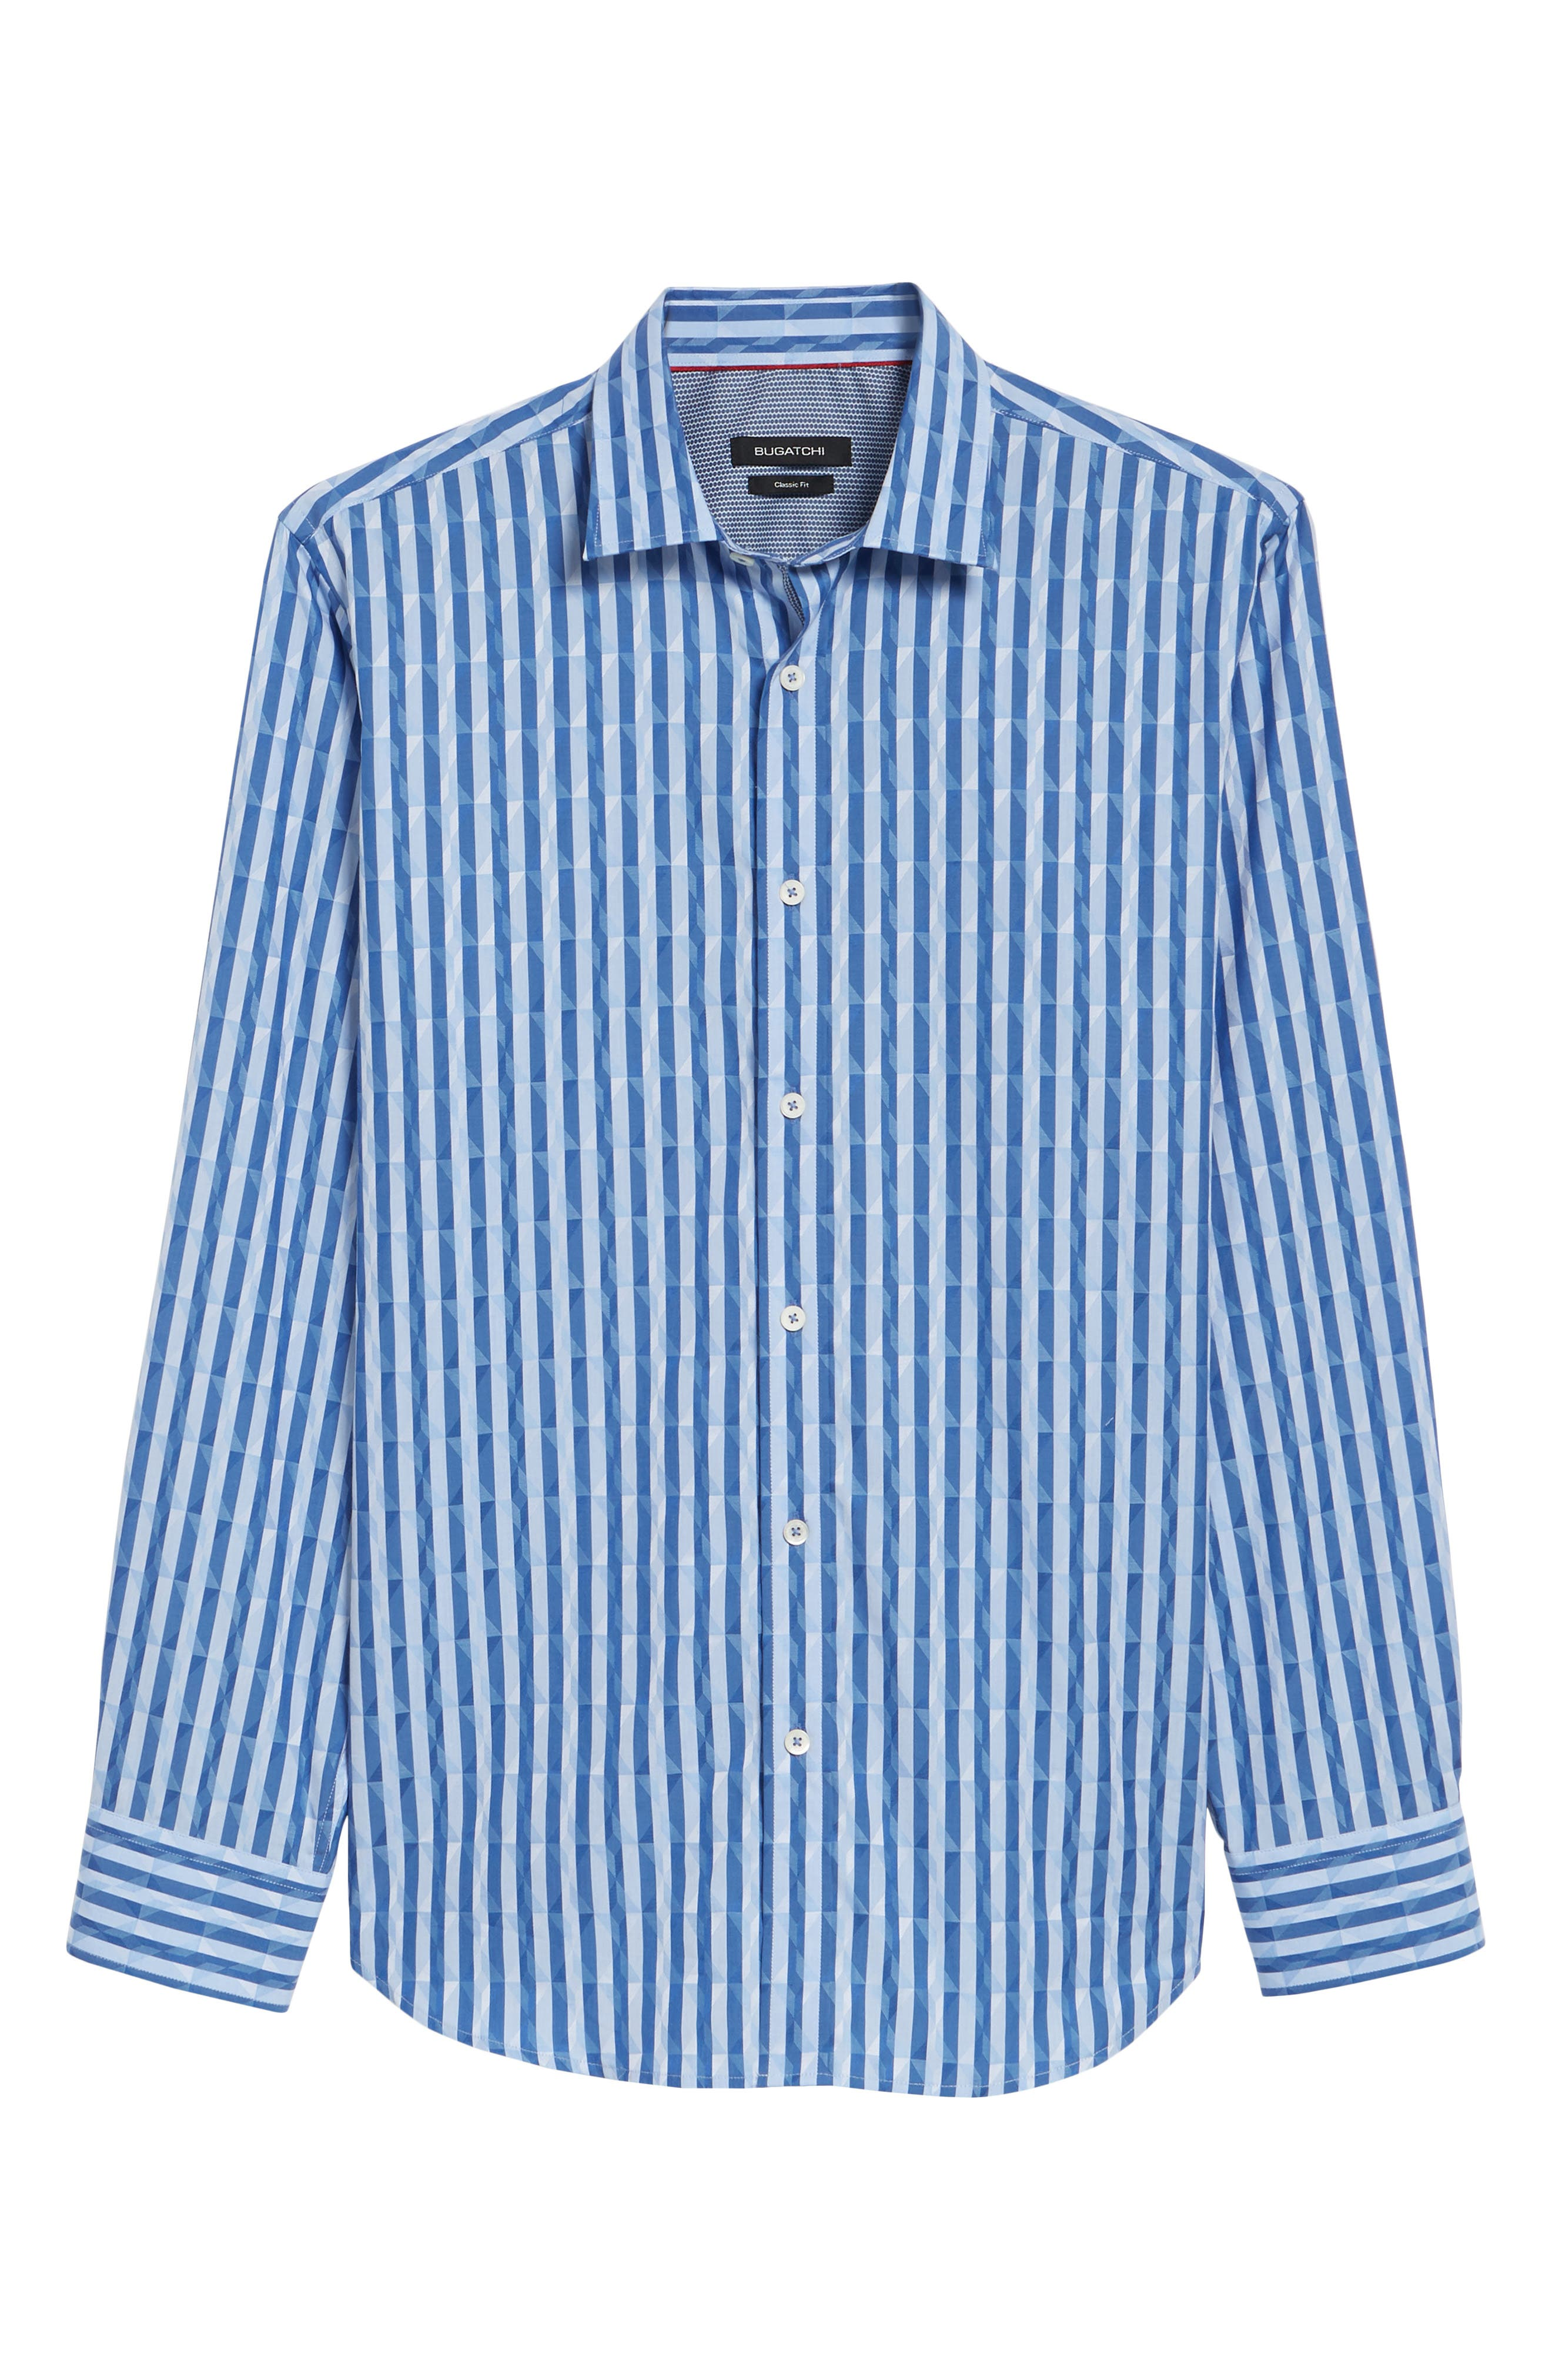 Candy Stripe Geometric Classic Fit Sport Shirt,                             Alternate thumbnail 6, color,                             422